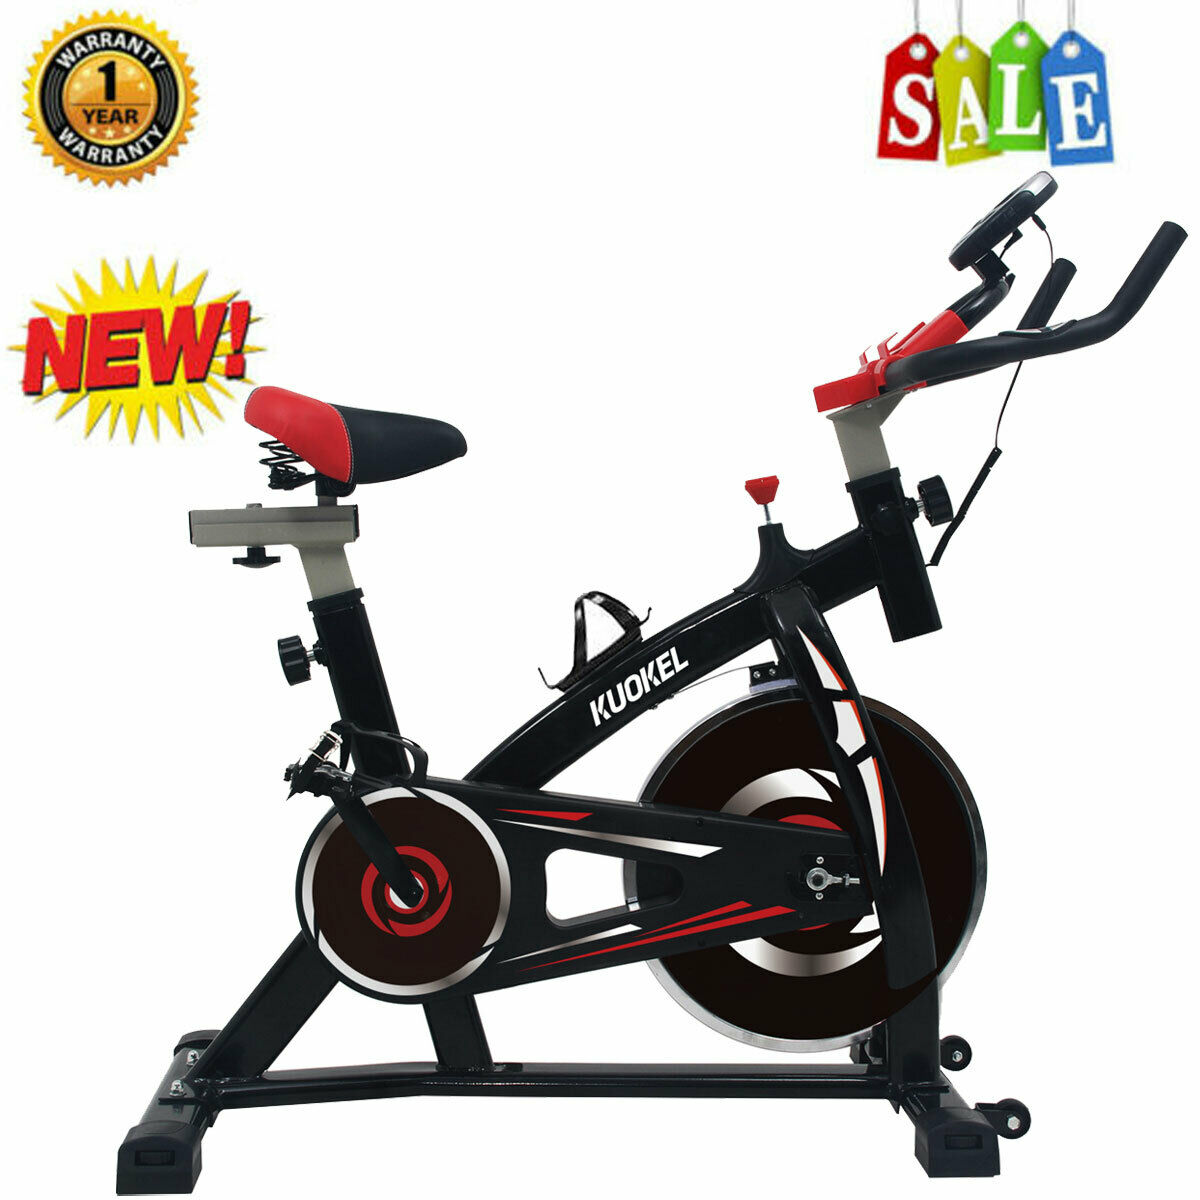 Pro Stationary Exercise Aerobic Bicycle Bike Cycling Cardio GYM Home Workout US aerobic bicycle bike cardio cycling exercise gym home pro stationary